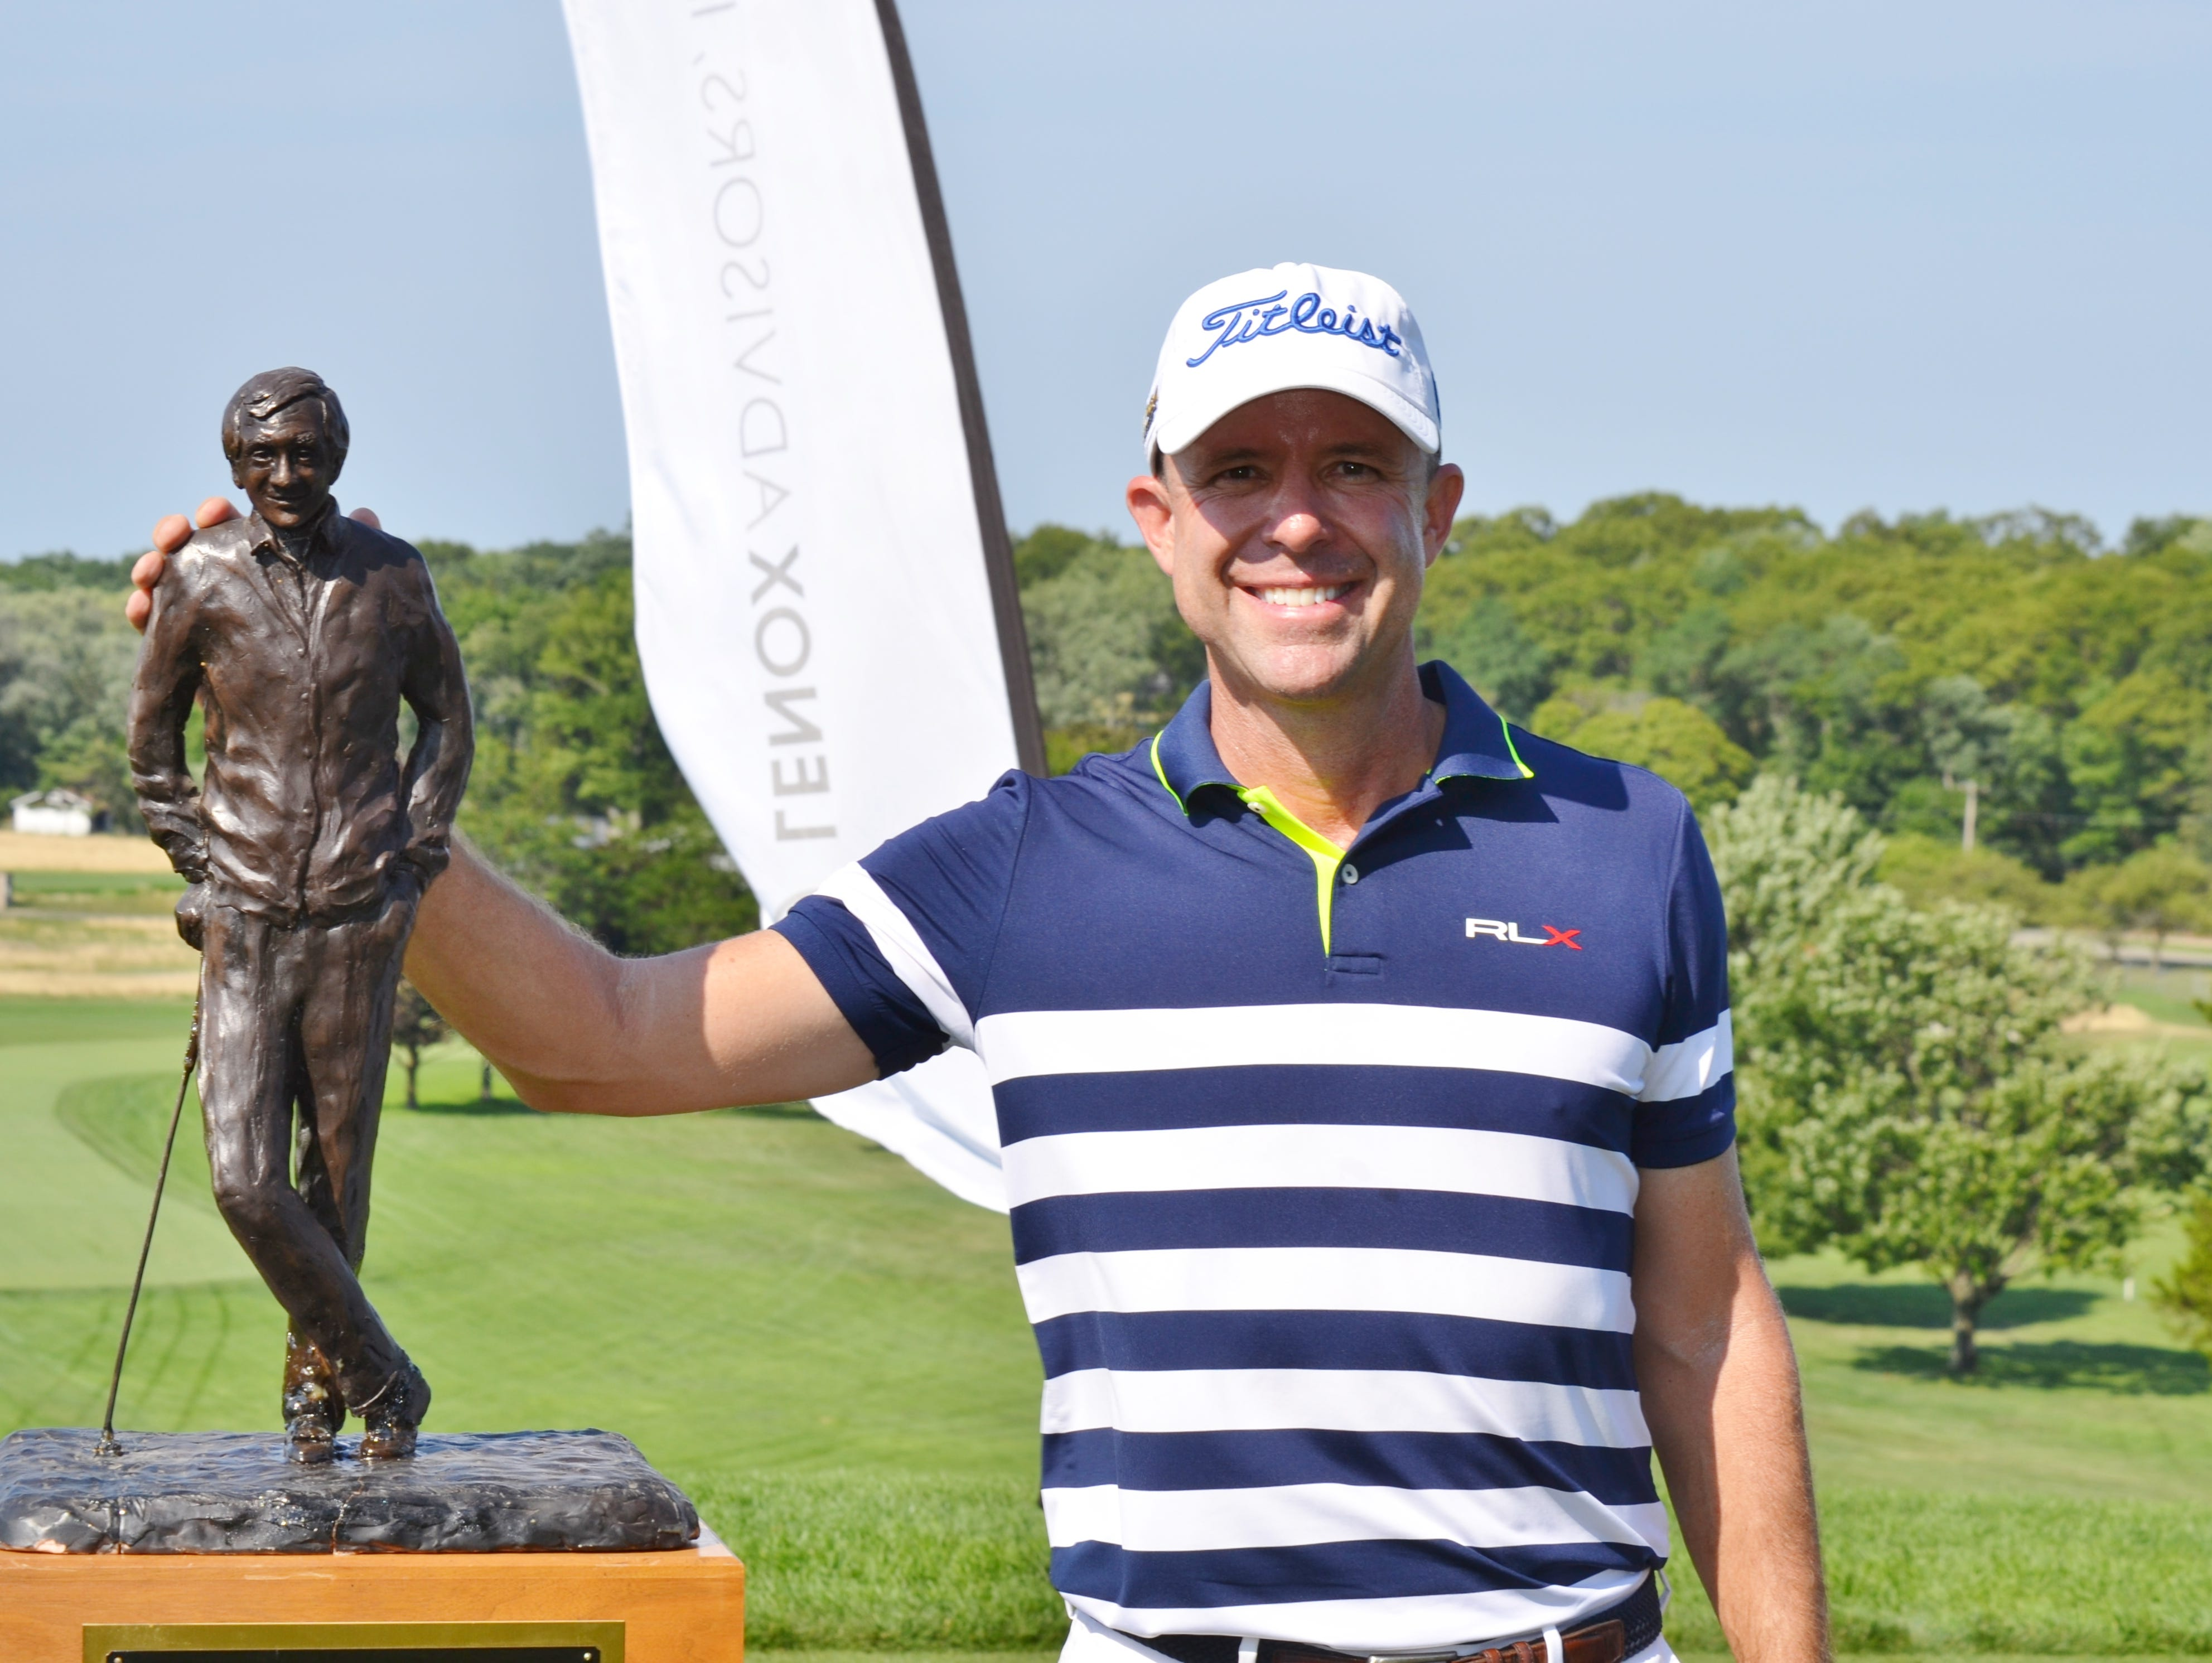 Rob Labritz poses with the trophy after winning the New York State Open on Thursday at Bethpage State Park's Black Course.